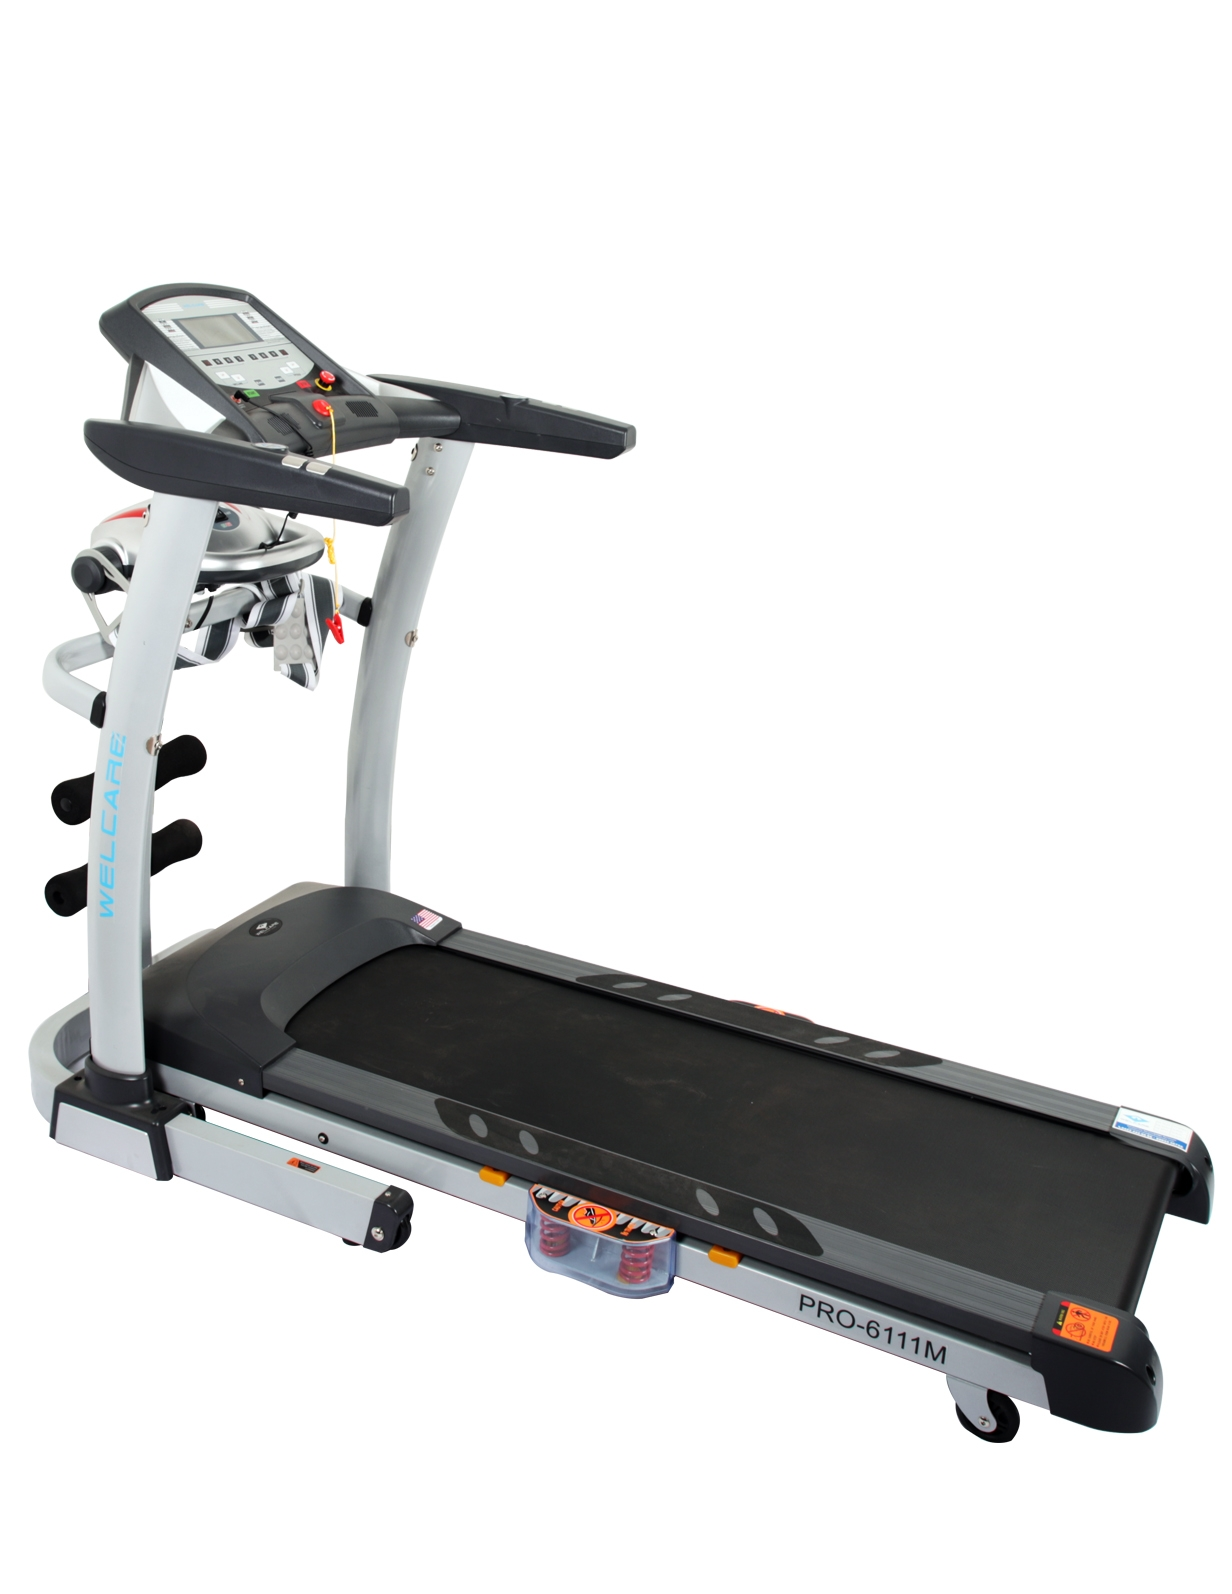 PRO 6111M LOW IMPACT TREADMILL – MULTI PURPOSE